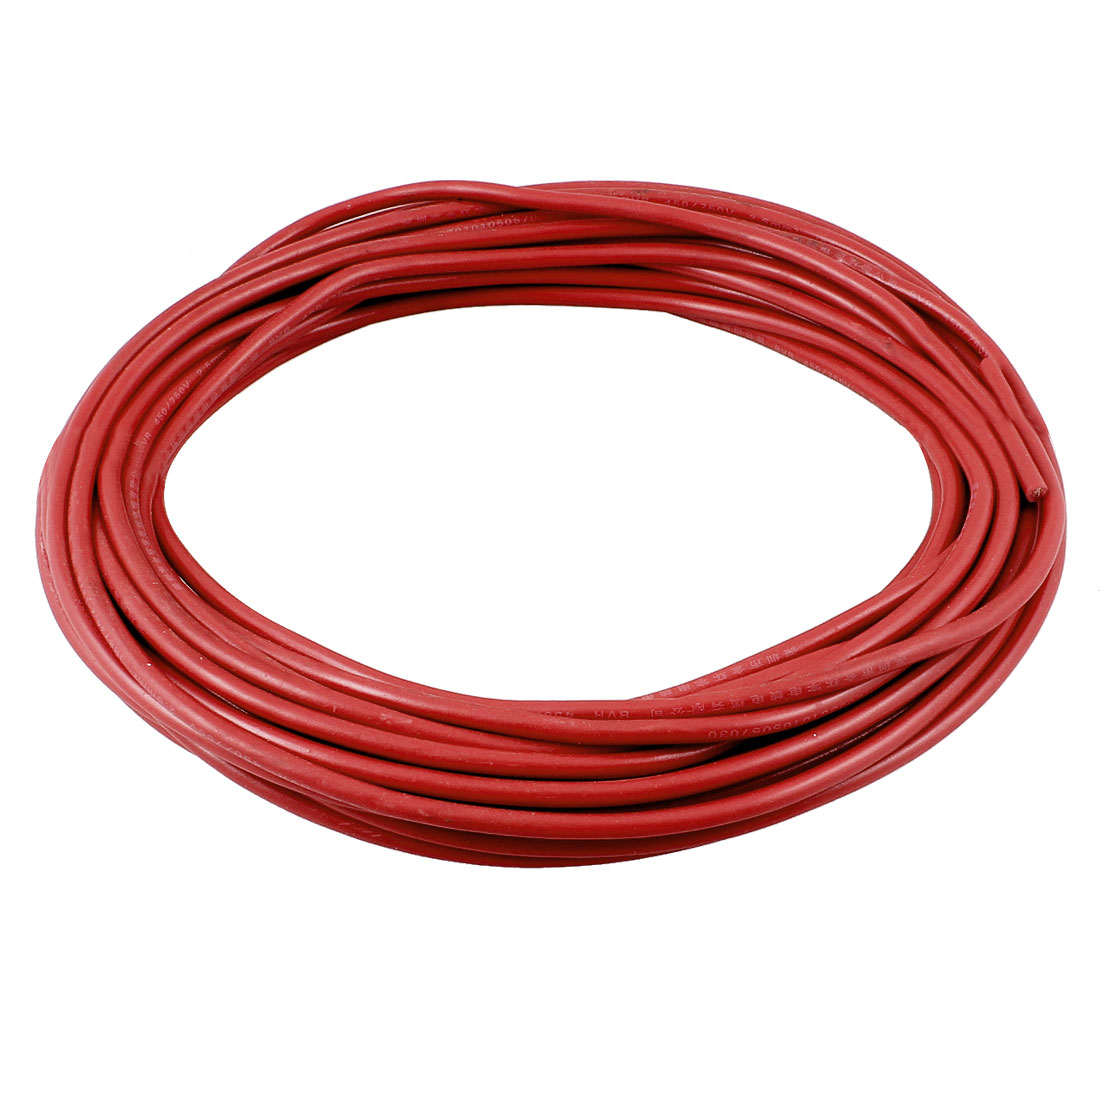 10M-32-8FT-Length-Red-PVC-Insulated-6mm2-Single-Core-Copper-Wire-Cable